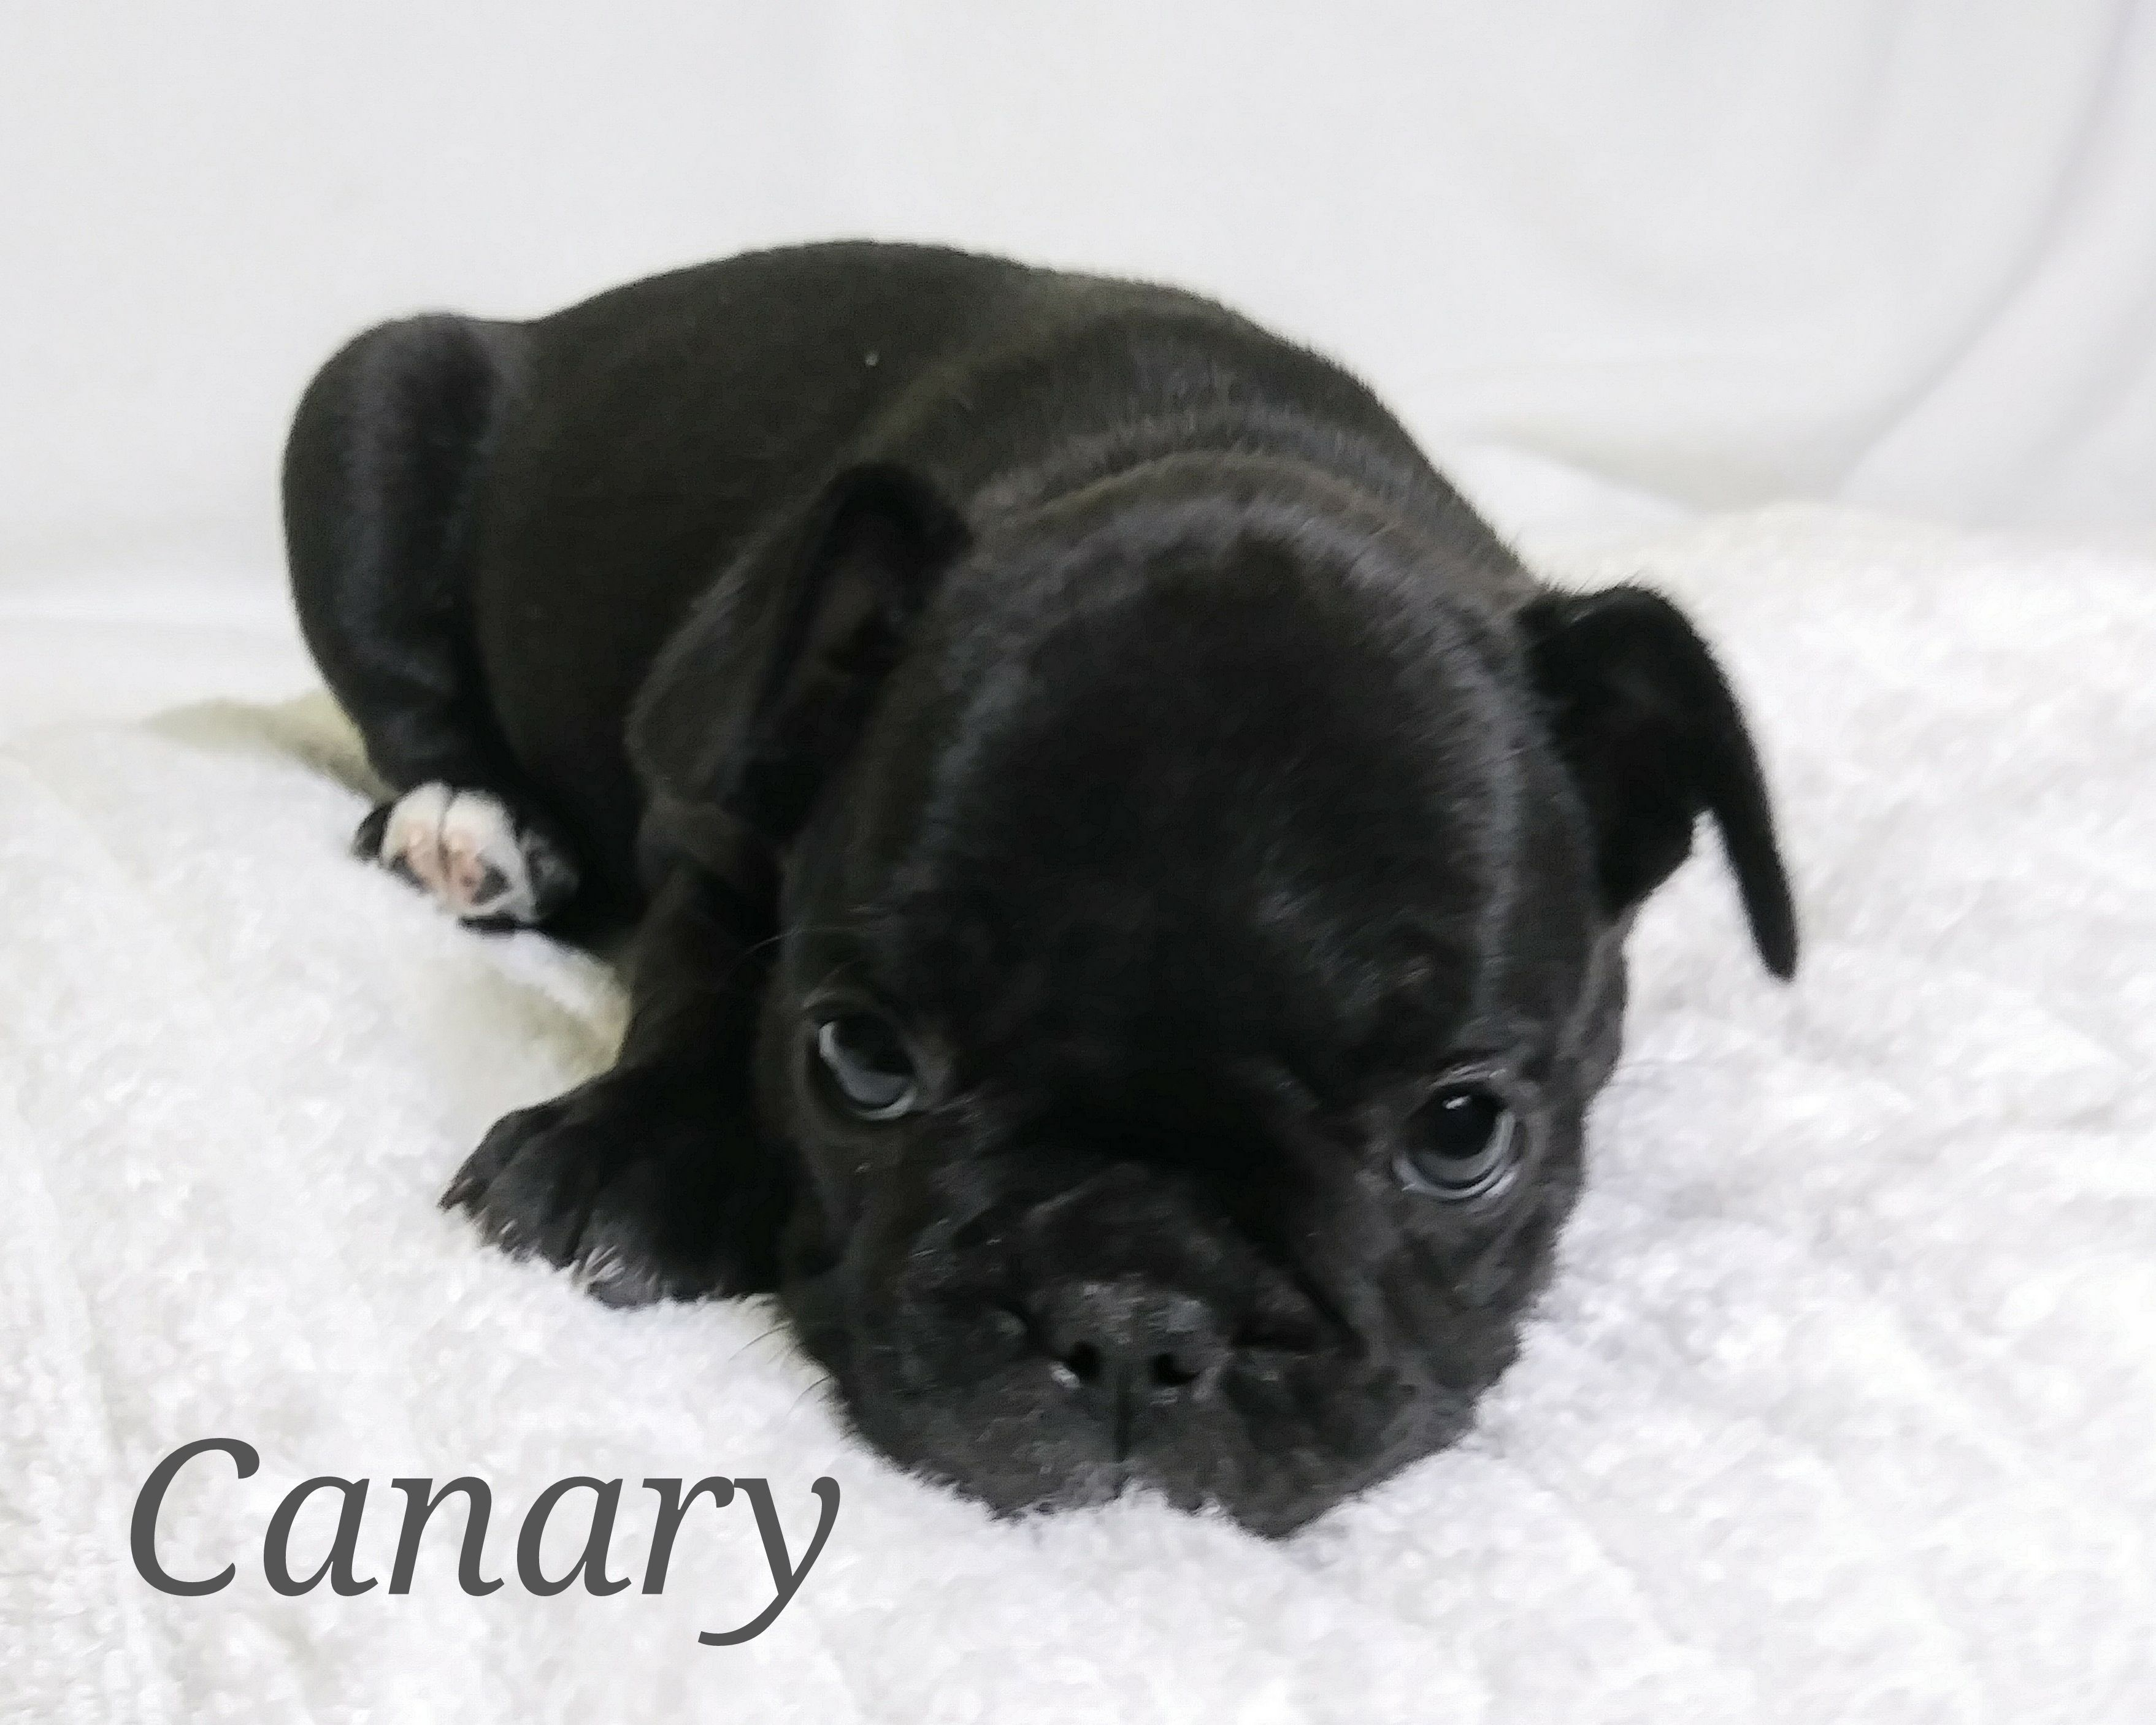 Canary a female AKC French Bulldog puppy for sale in